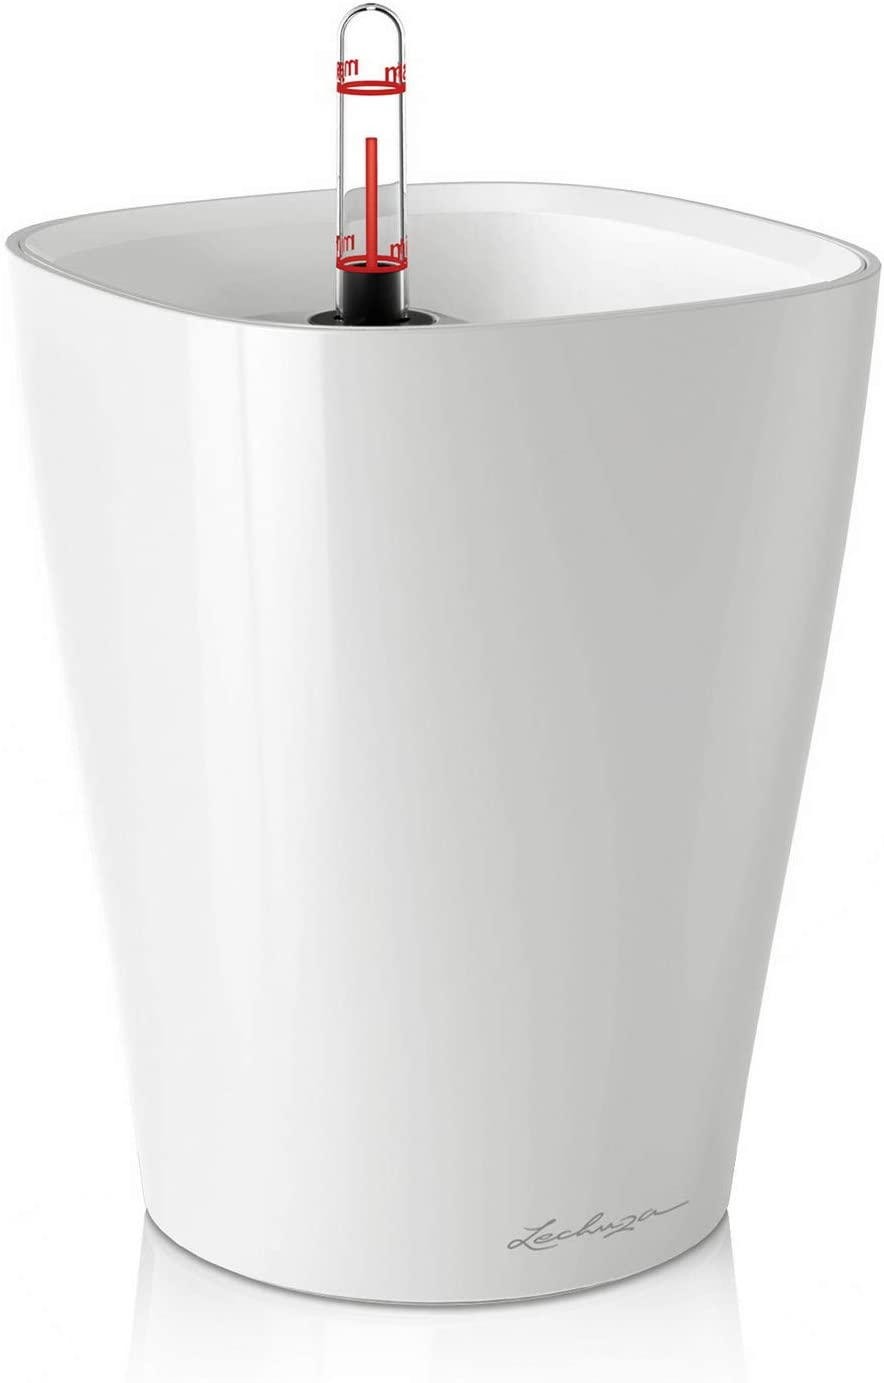 Lechuza 14900 Deltini Self-Watering Garden Planter for Indoor and Outdoor Use, White